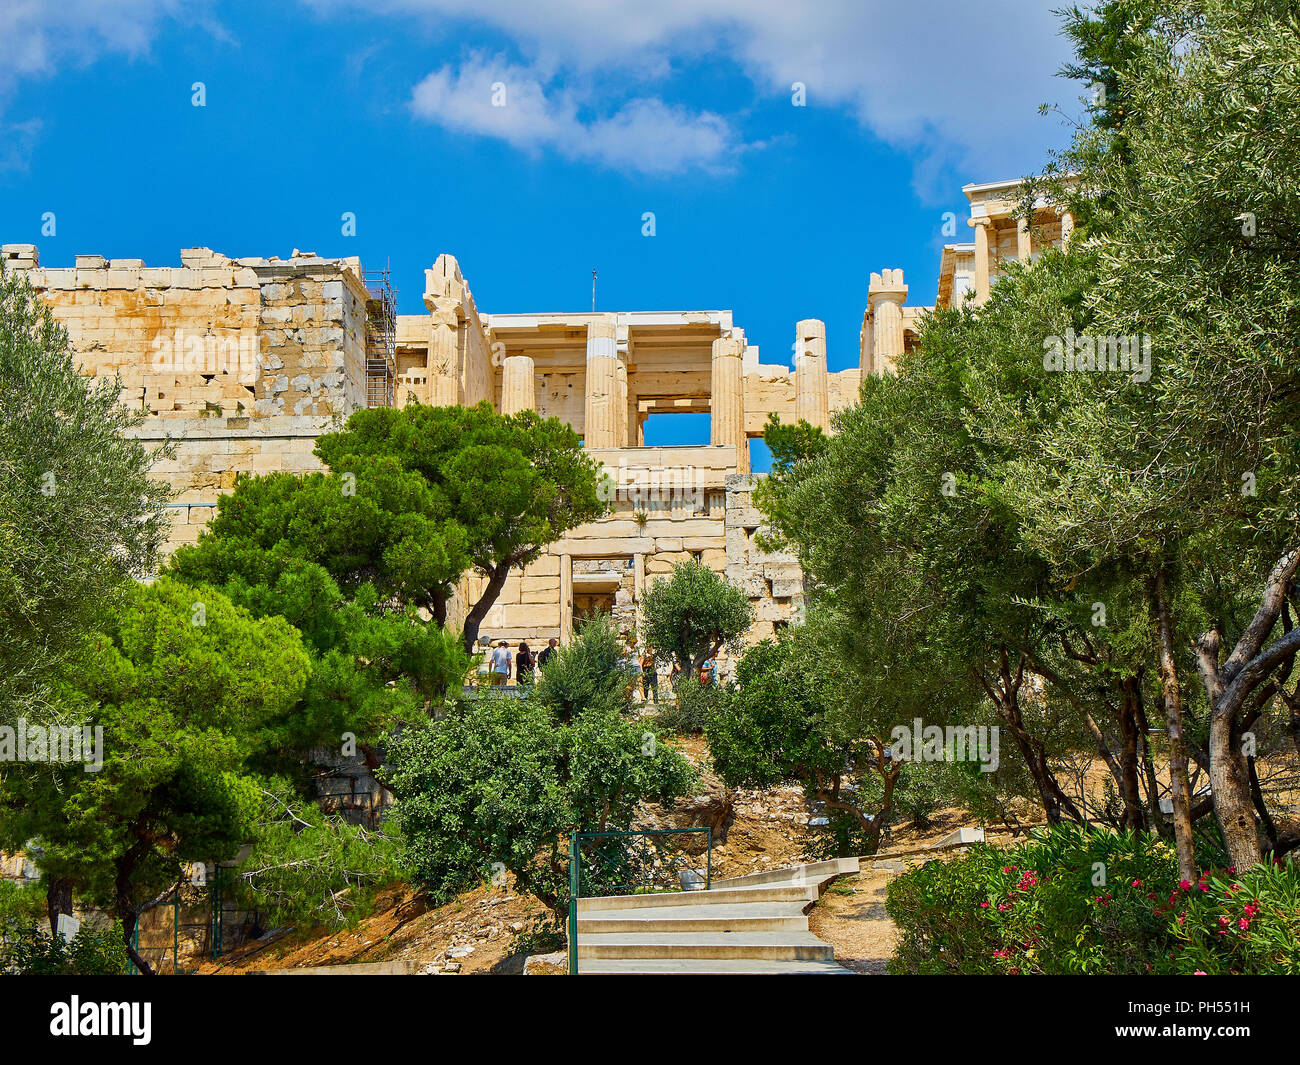 Athens, Greece - July 1, 2018. Western side of Propylaea, the ancient gateway to the Athenian Acropolis. Athens. Attica, Greece. - Stock Image